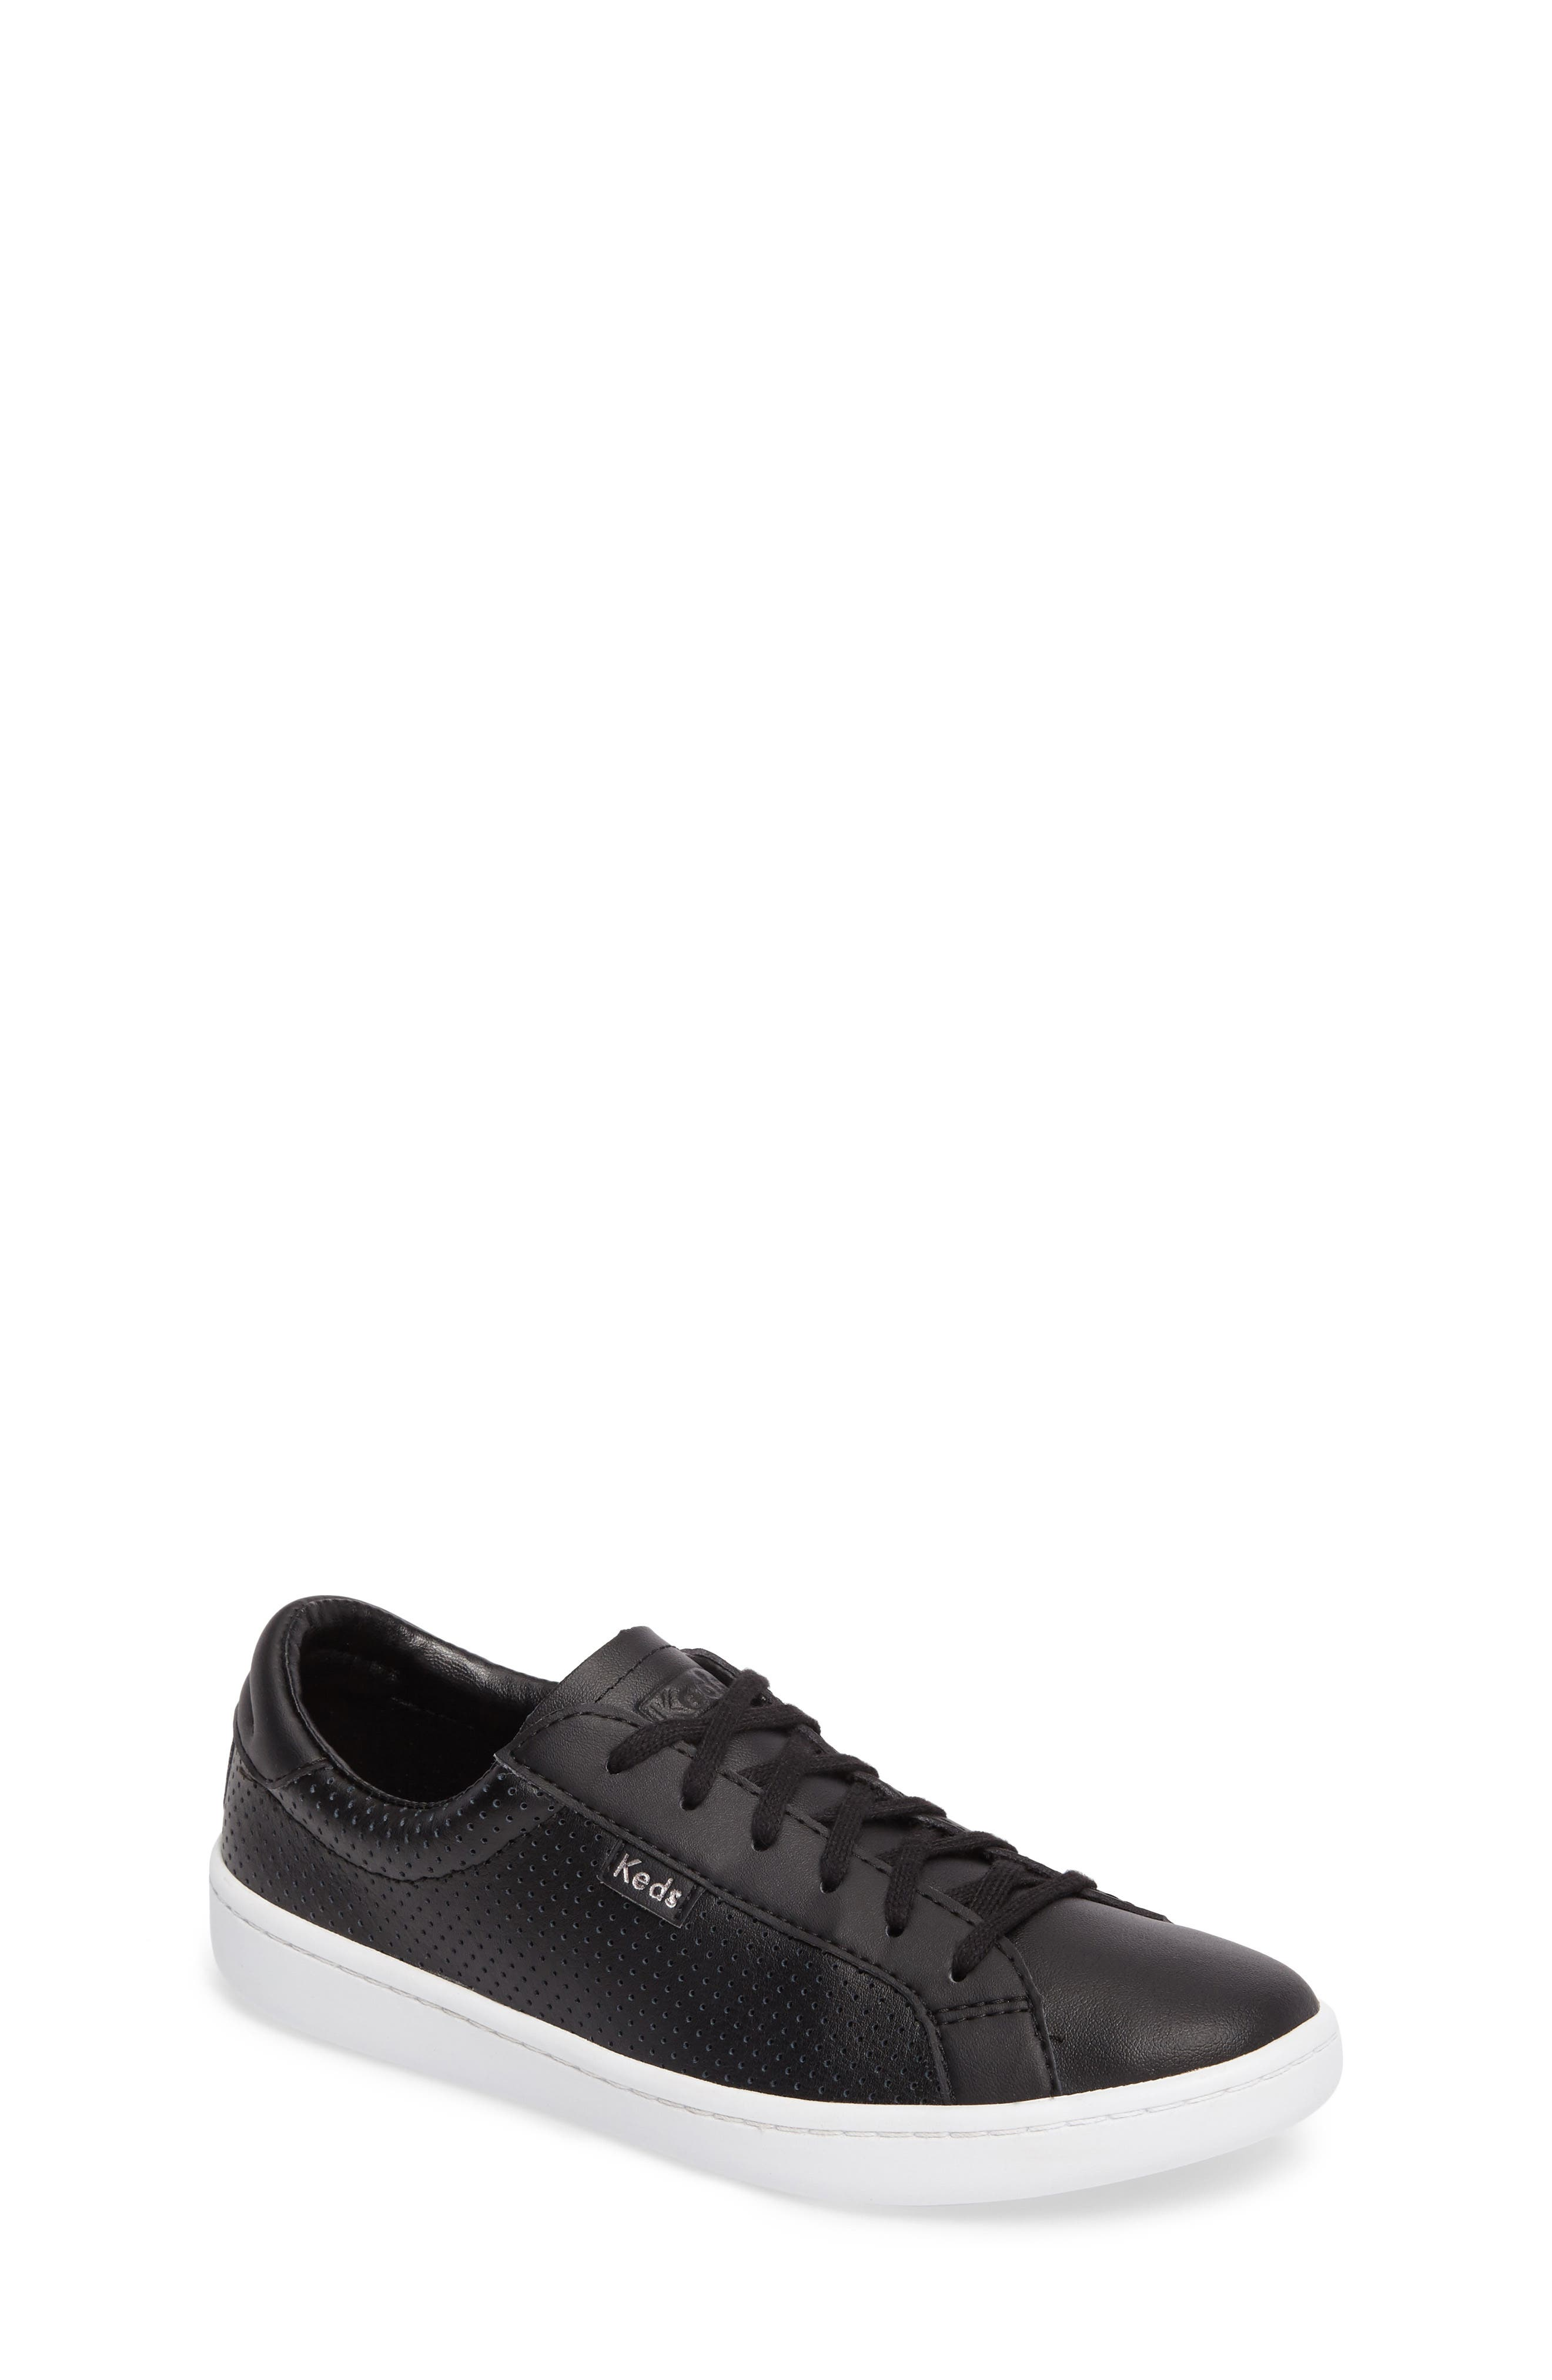 Main Image - Keds® Ace Perforated Low Top Sneaker (Toddler, Little Kid & Big Kid)